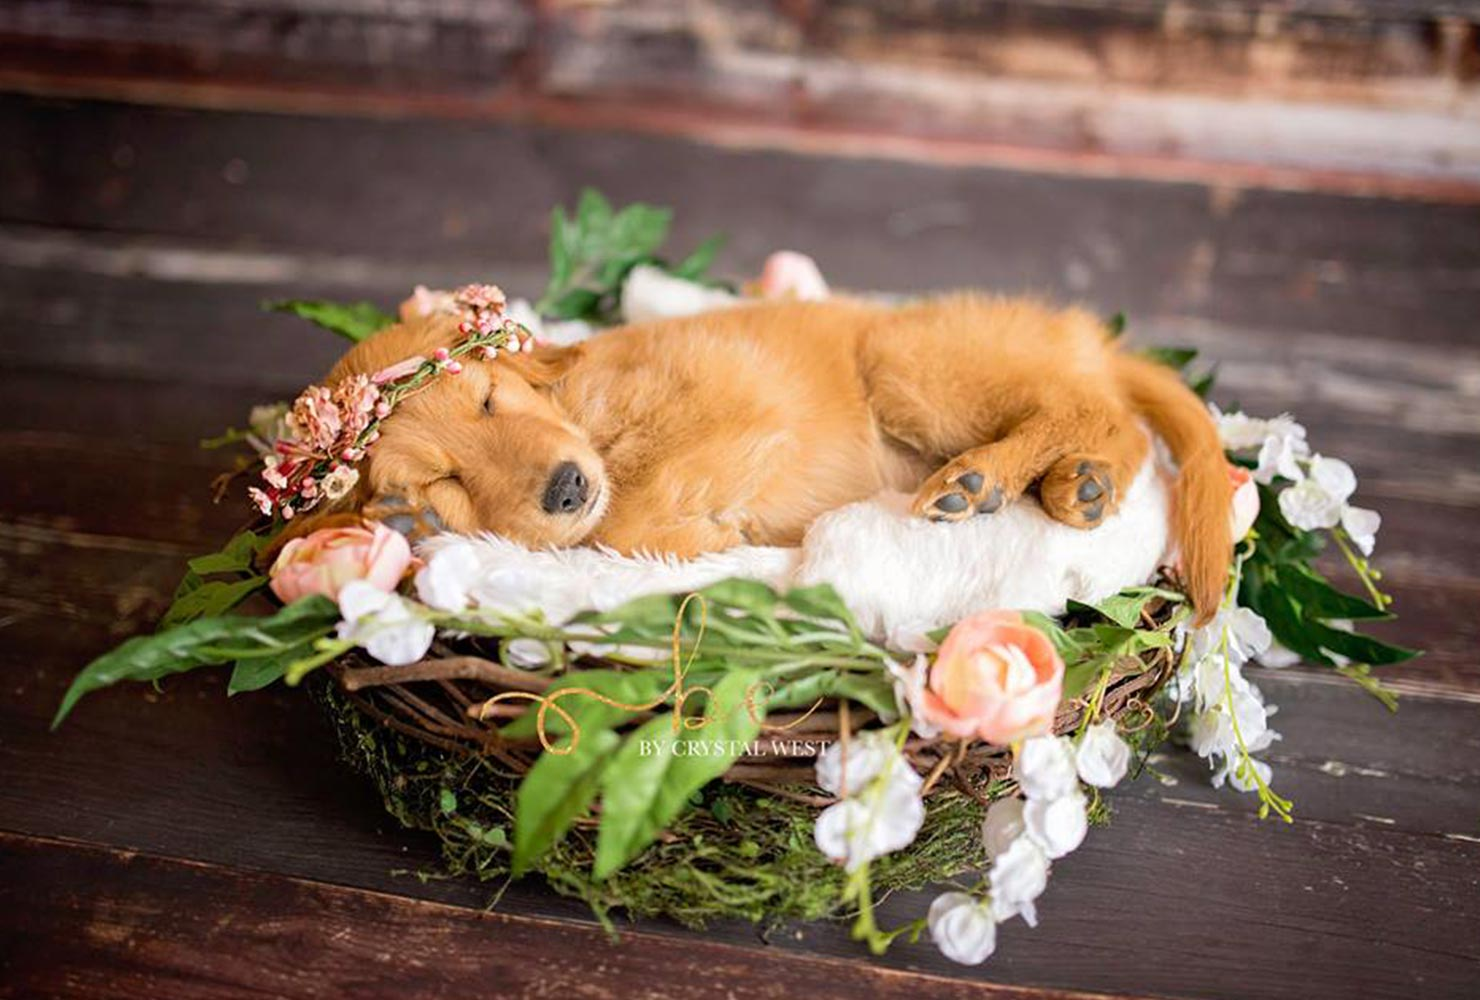 puppy photo goldie sleeping flower basket